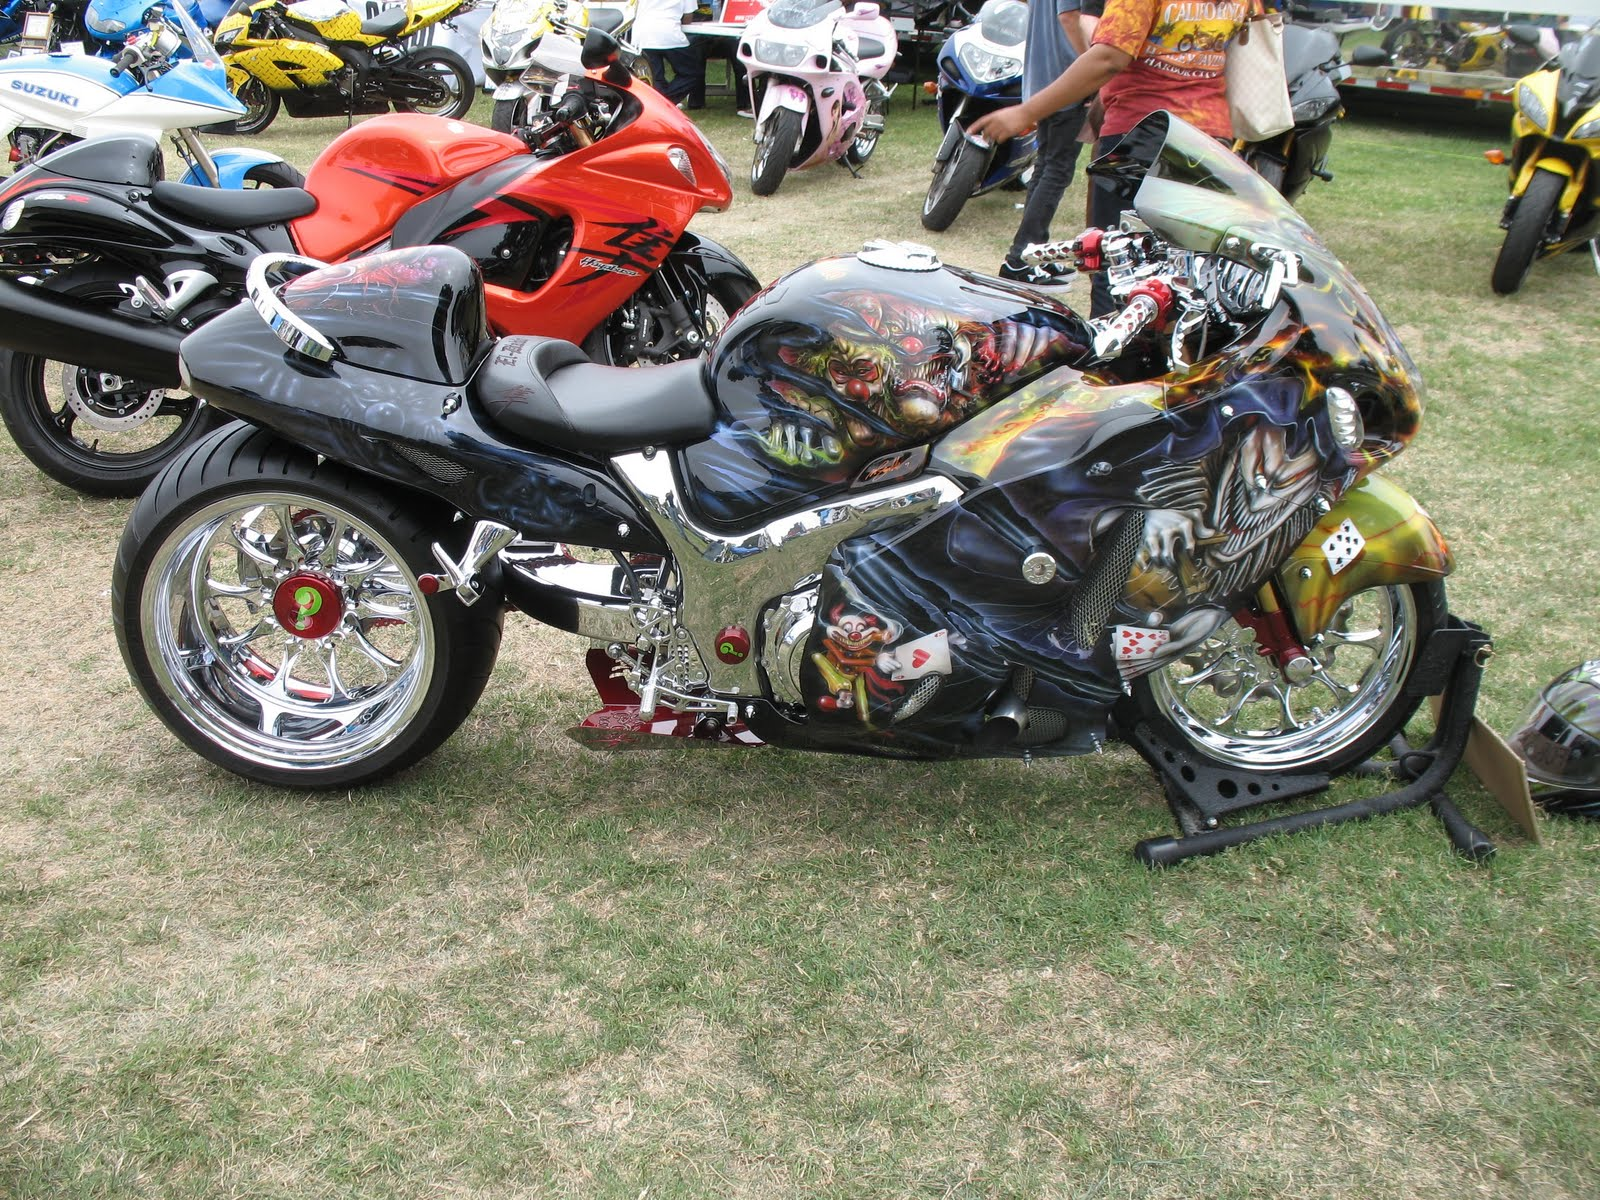 Custom Chopper Motorcycles S Heres A Sports Bike With Some Cool Clown Paint